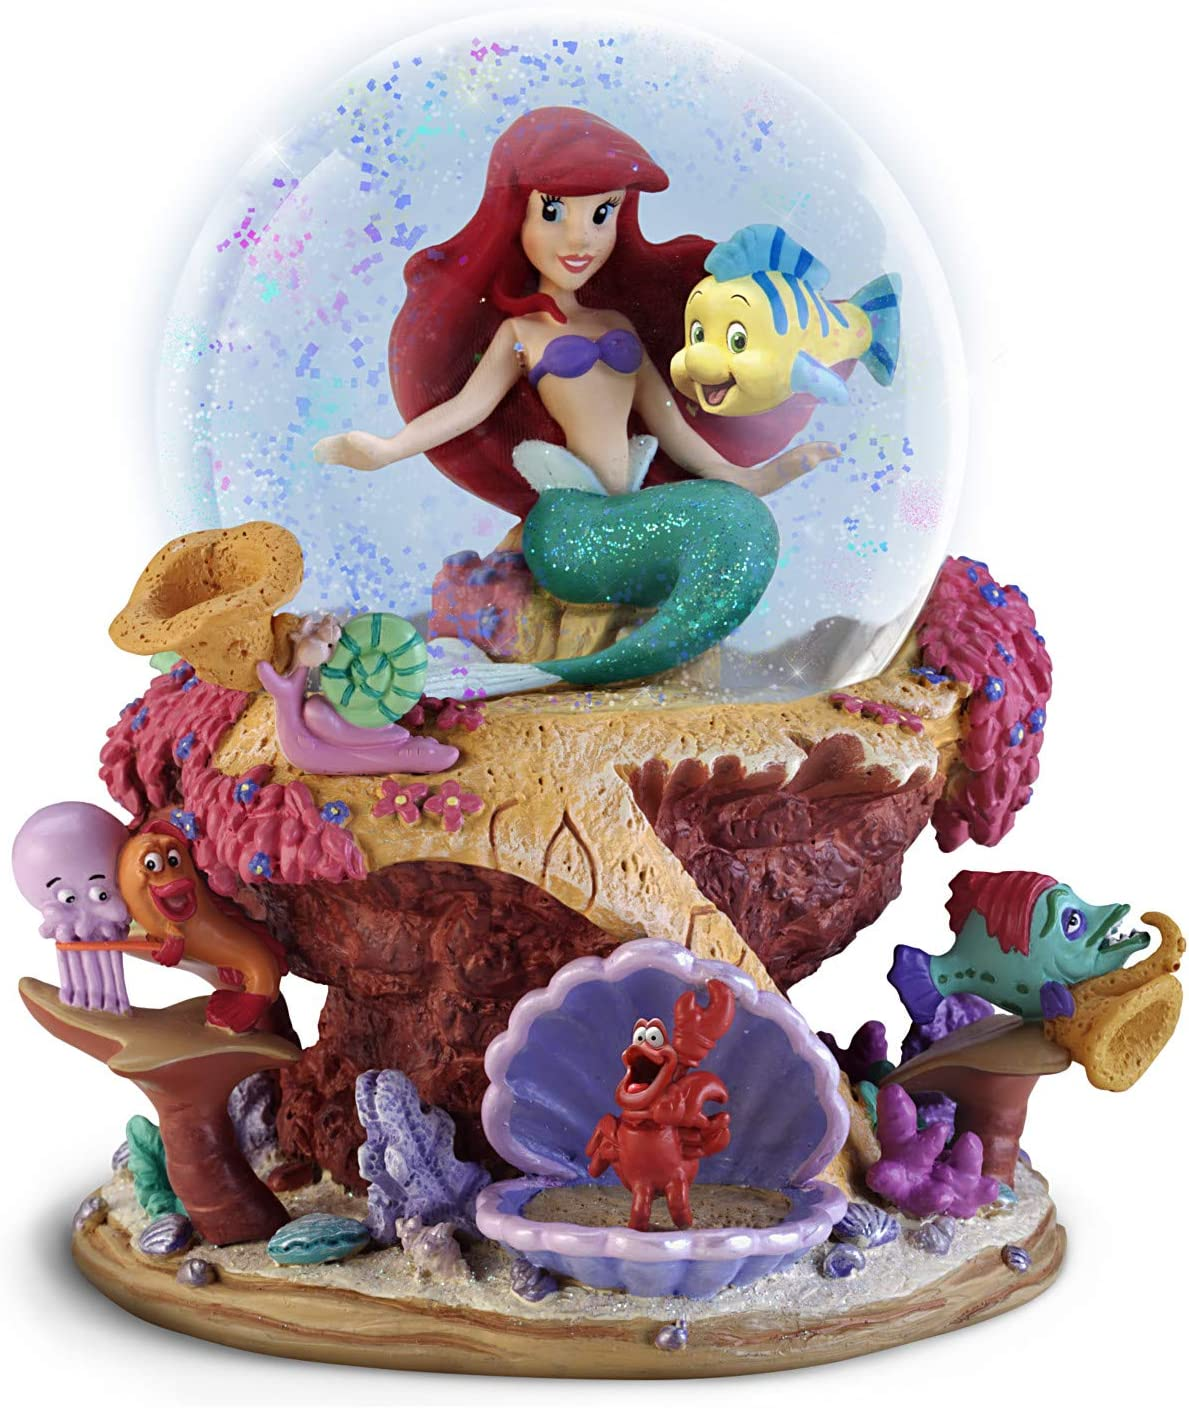 The Bradford Exchange Disney The Little Mermaid Musical Glitter Globe Featuring Ariel and Flounder